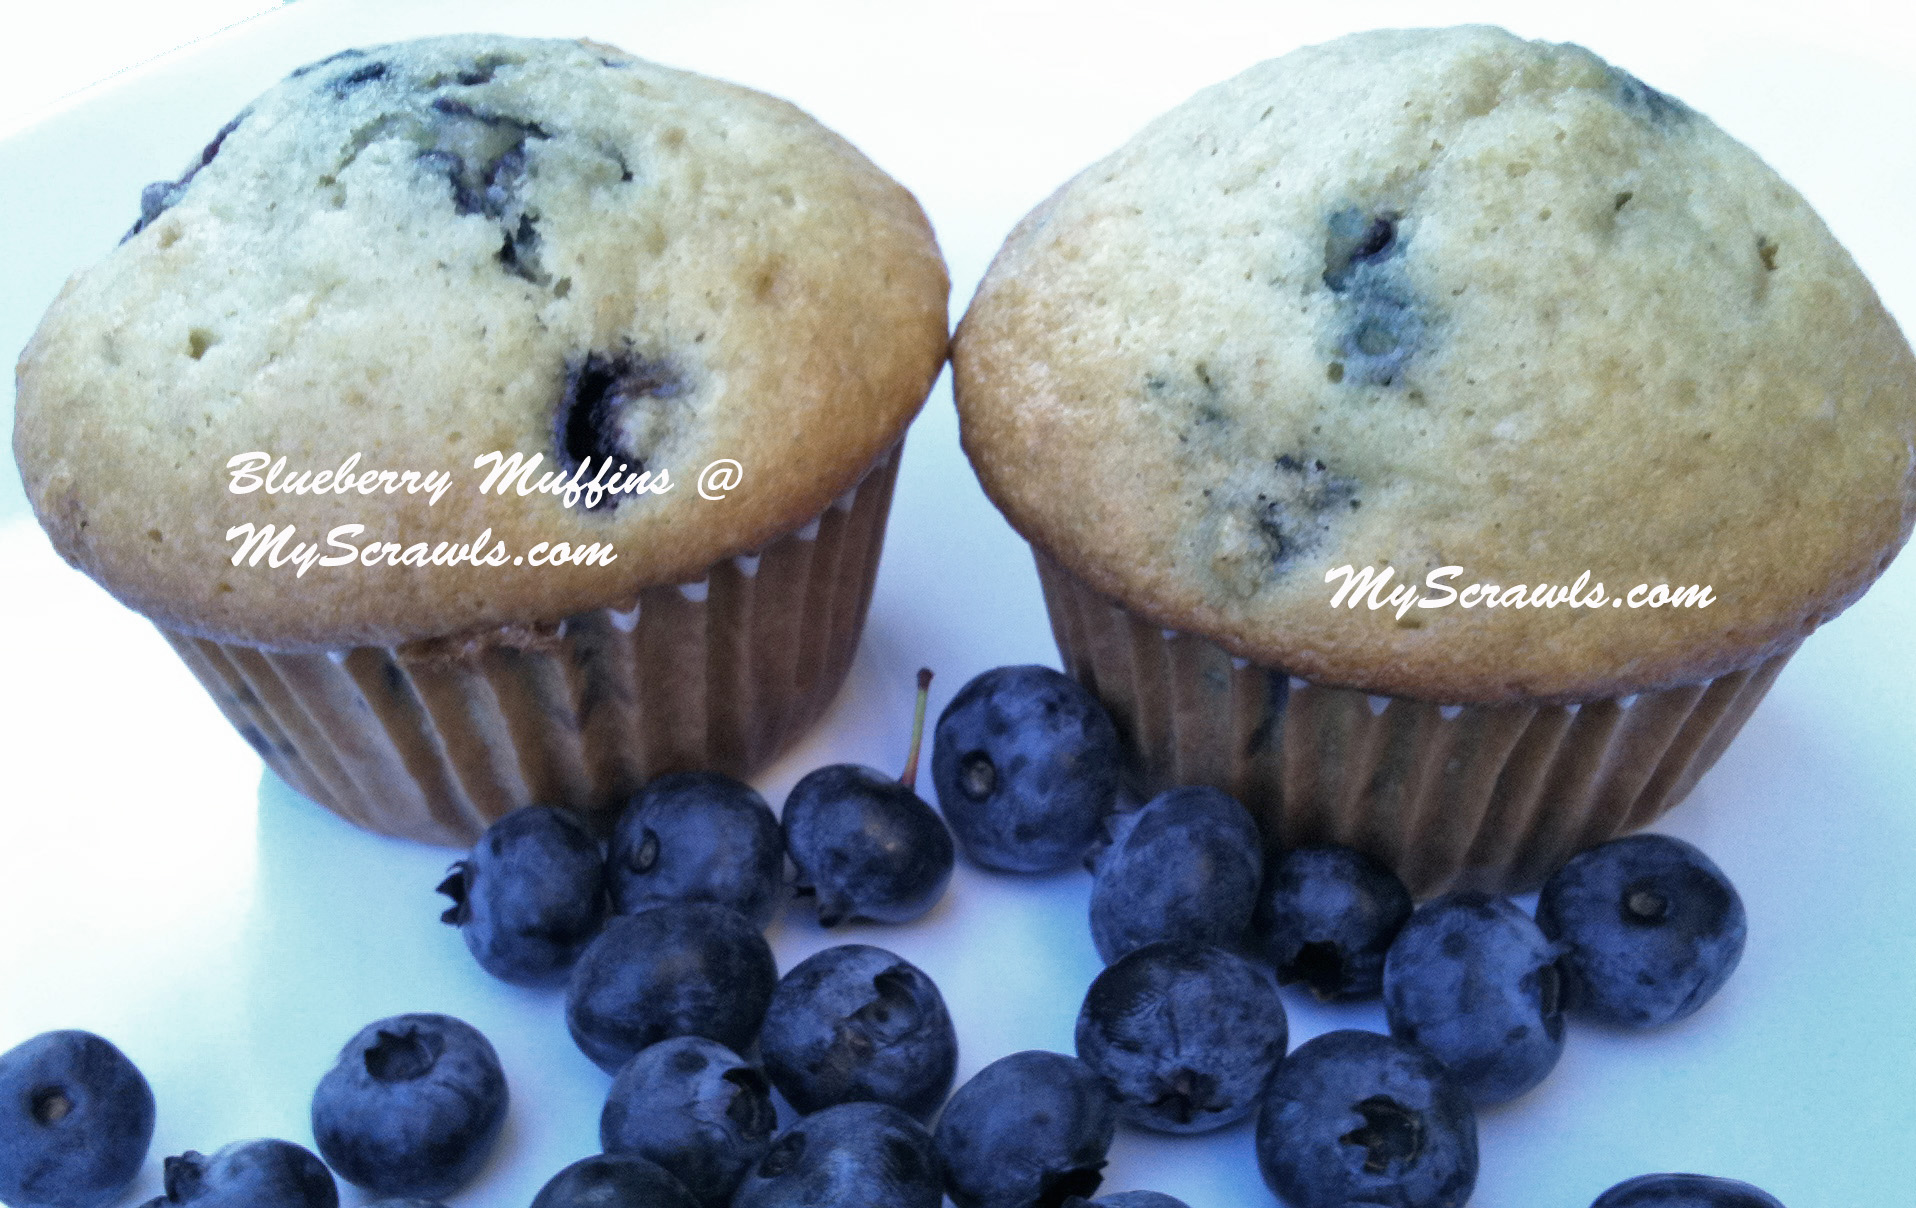 Blueberry Muffins Recipe Blueberry muffins – My Scrawls